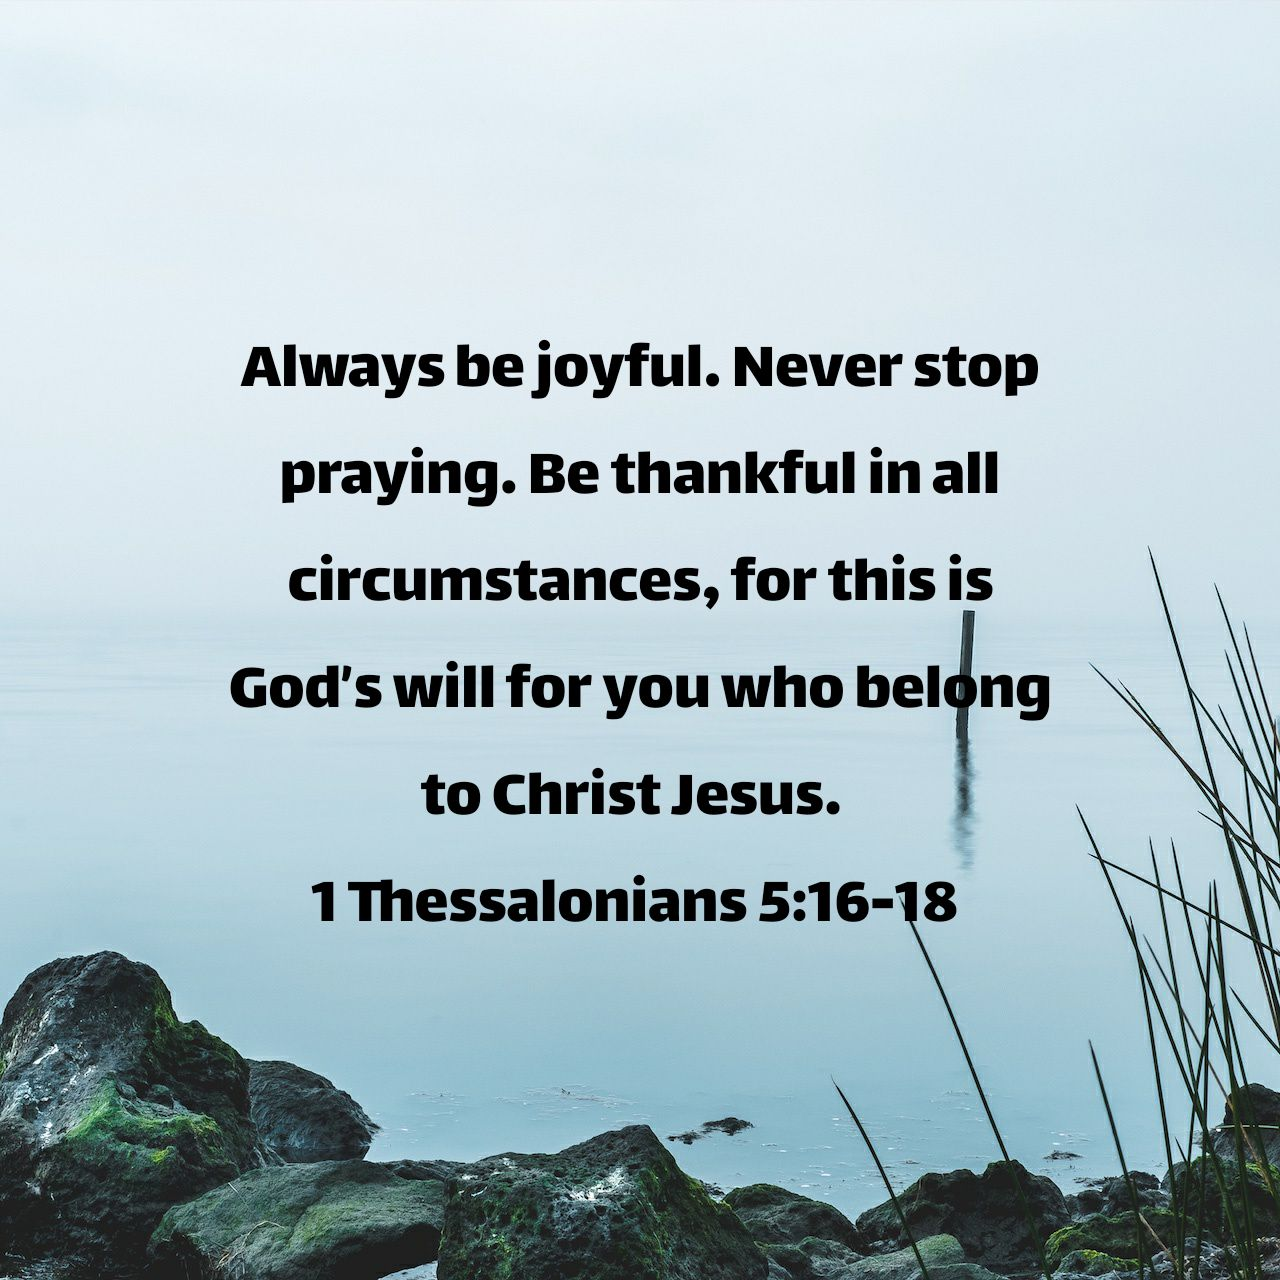 Always be joyful. Never stop praying. Be thankful in all circumstances, for this is God's will for you who belong to Christ Jesus. - 1 Thessalonians 5:16‭-‬18 NLT